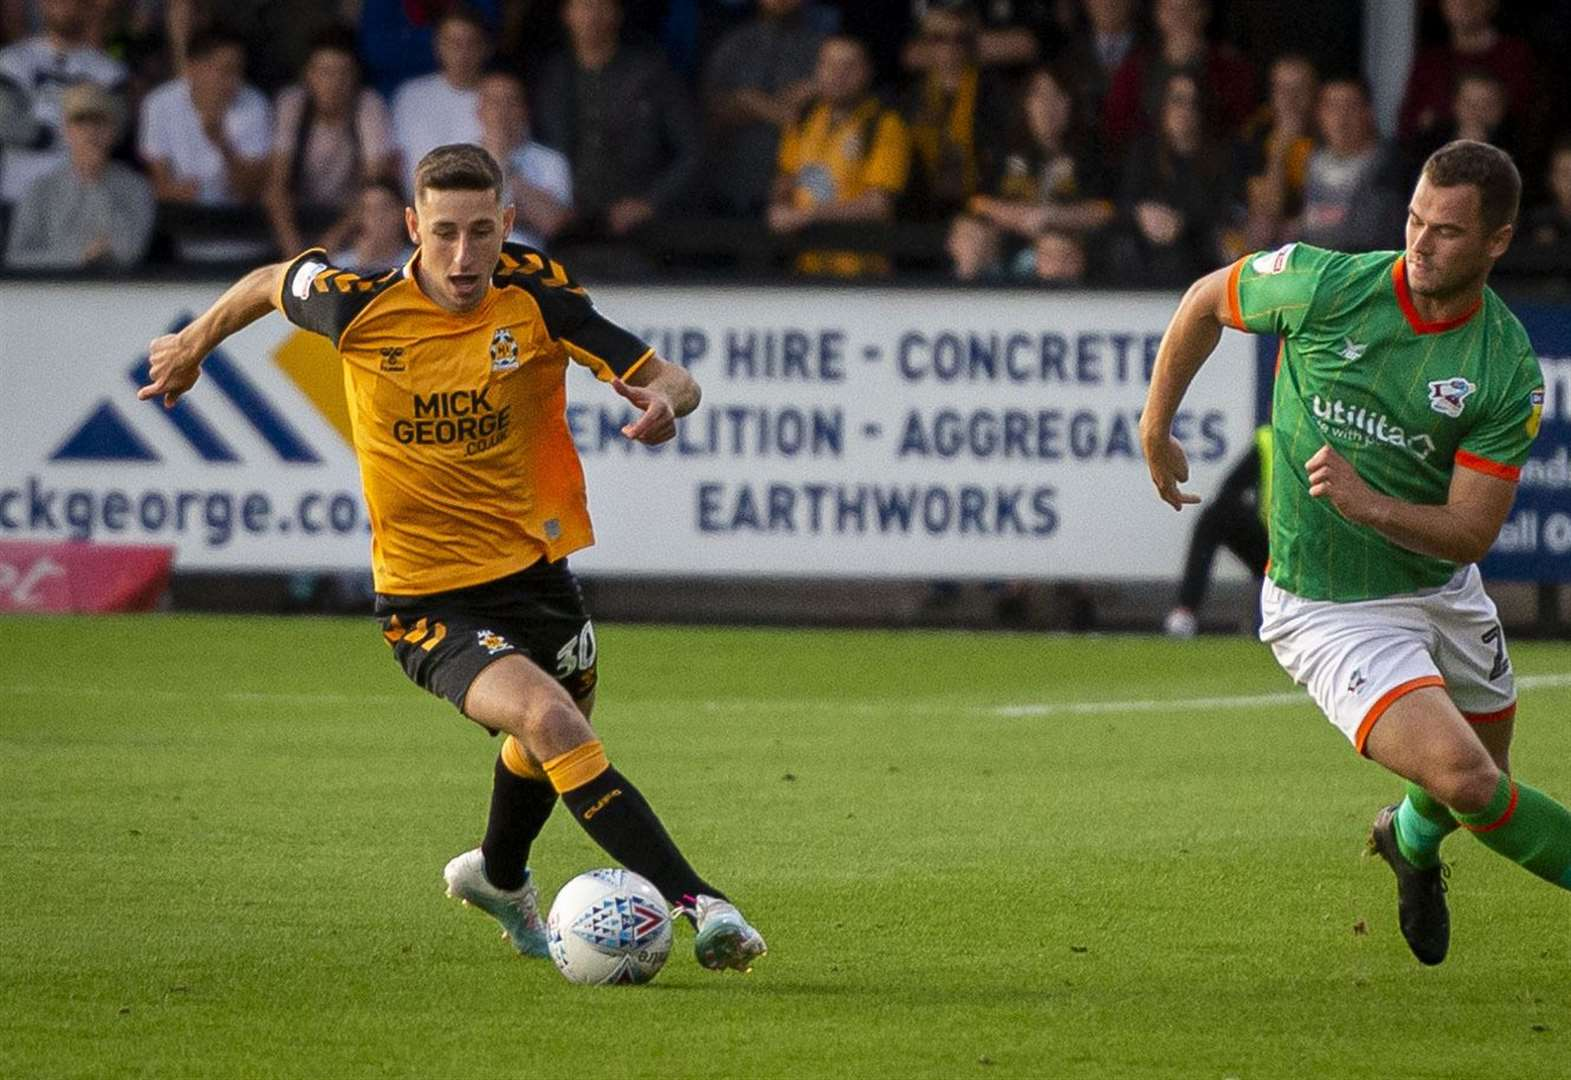 Tottenham's Jack ready to roll for Cambridge United